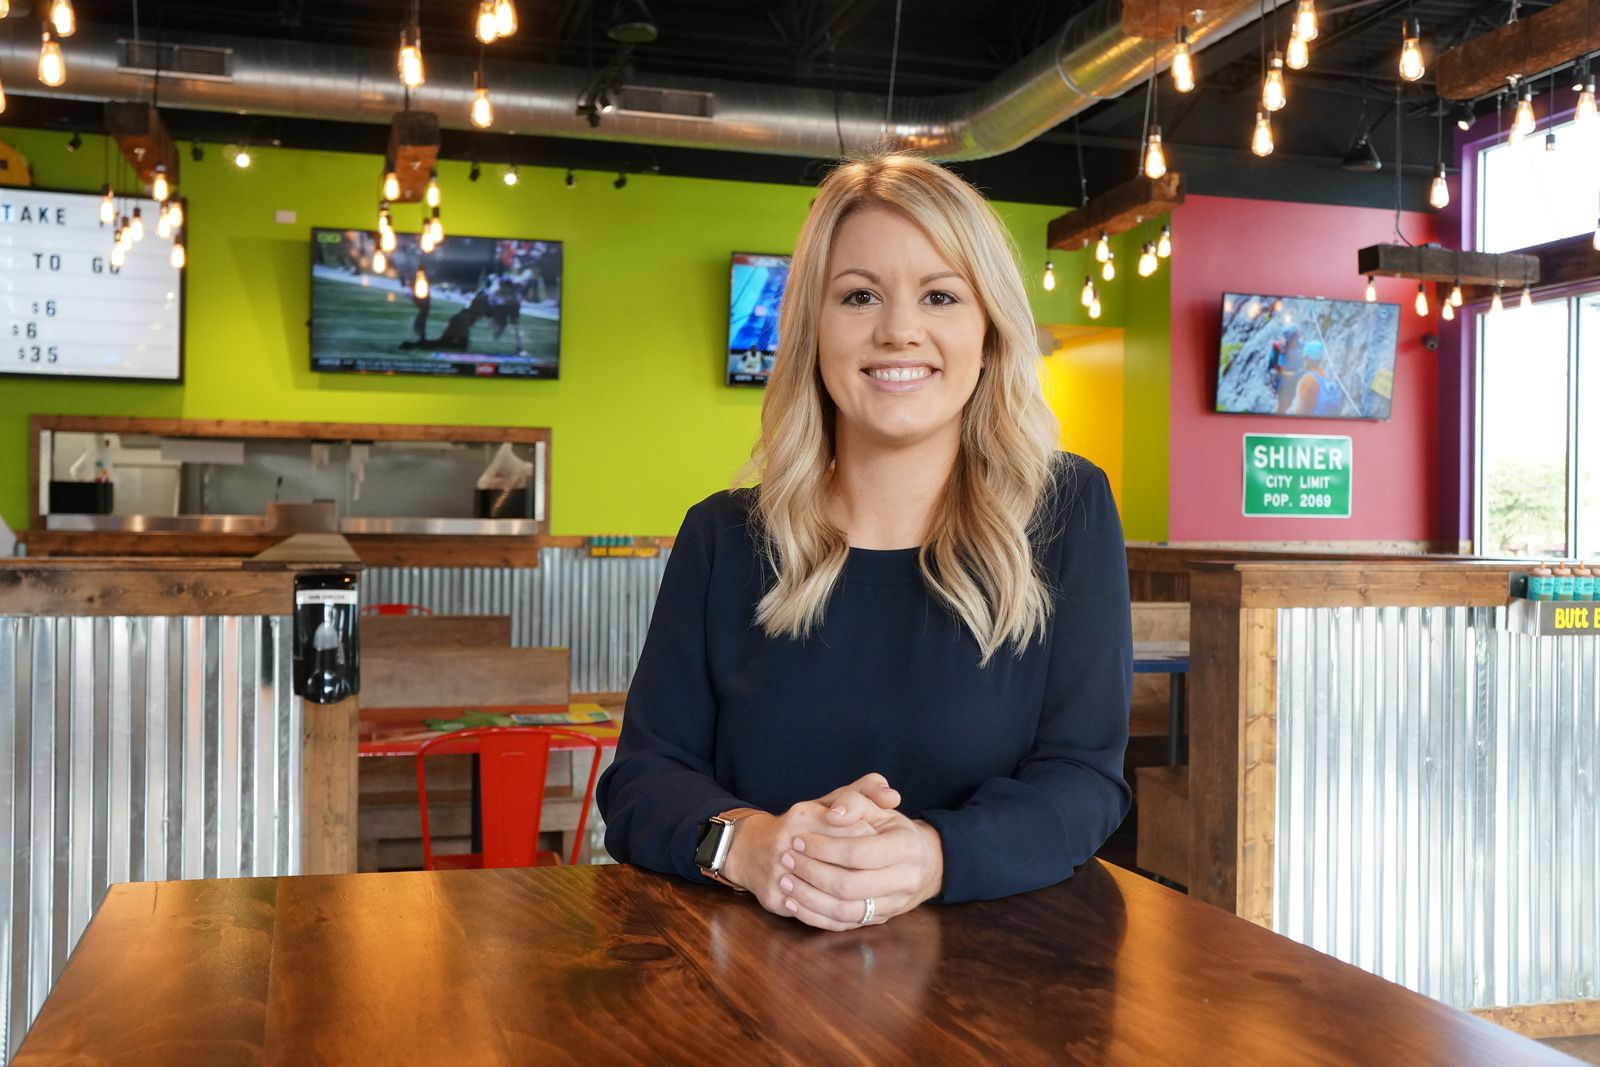 Fuzzy's Taco Shop Announces Jessica Wescott as Chief Operating Officer & Chief Financial Officer